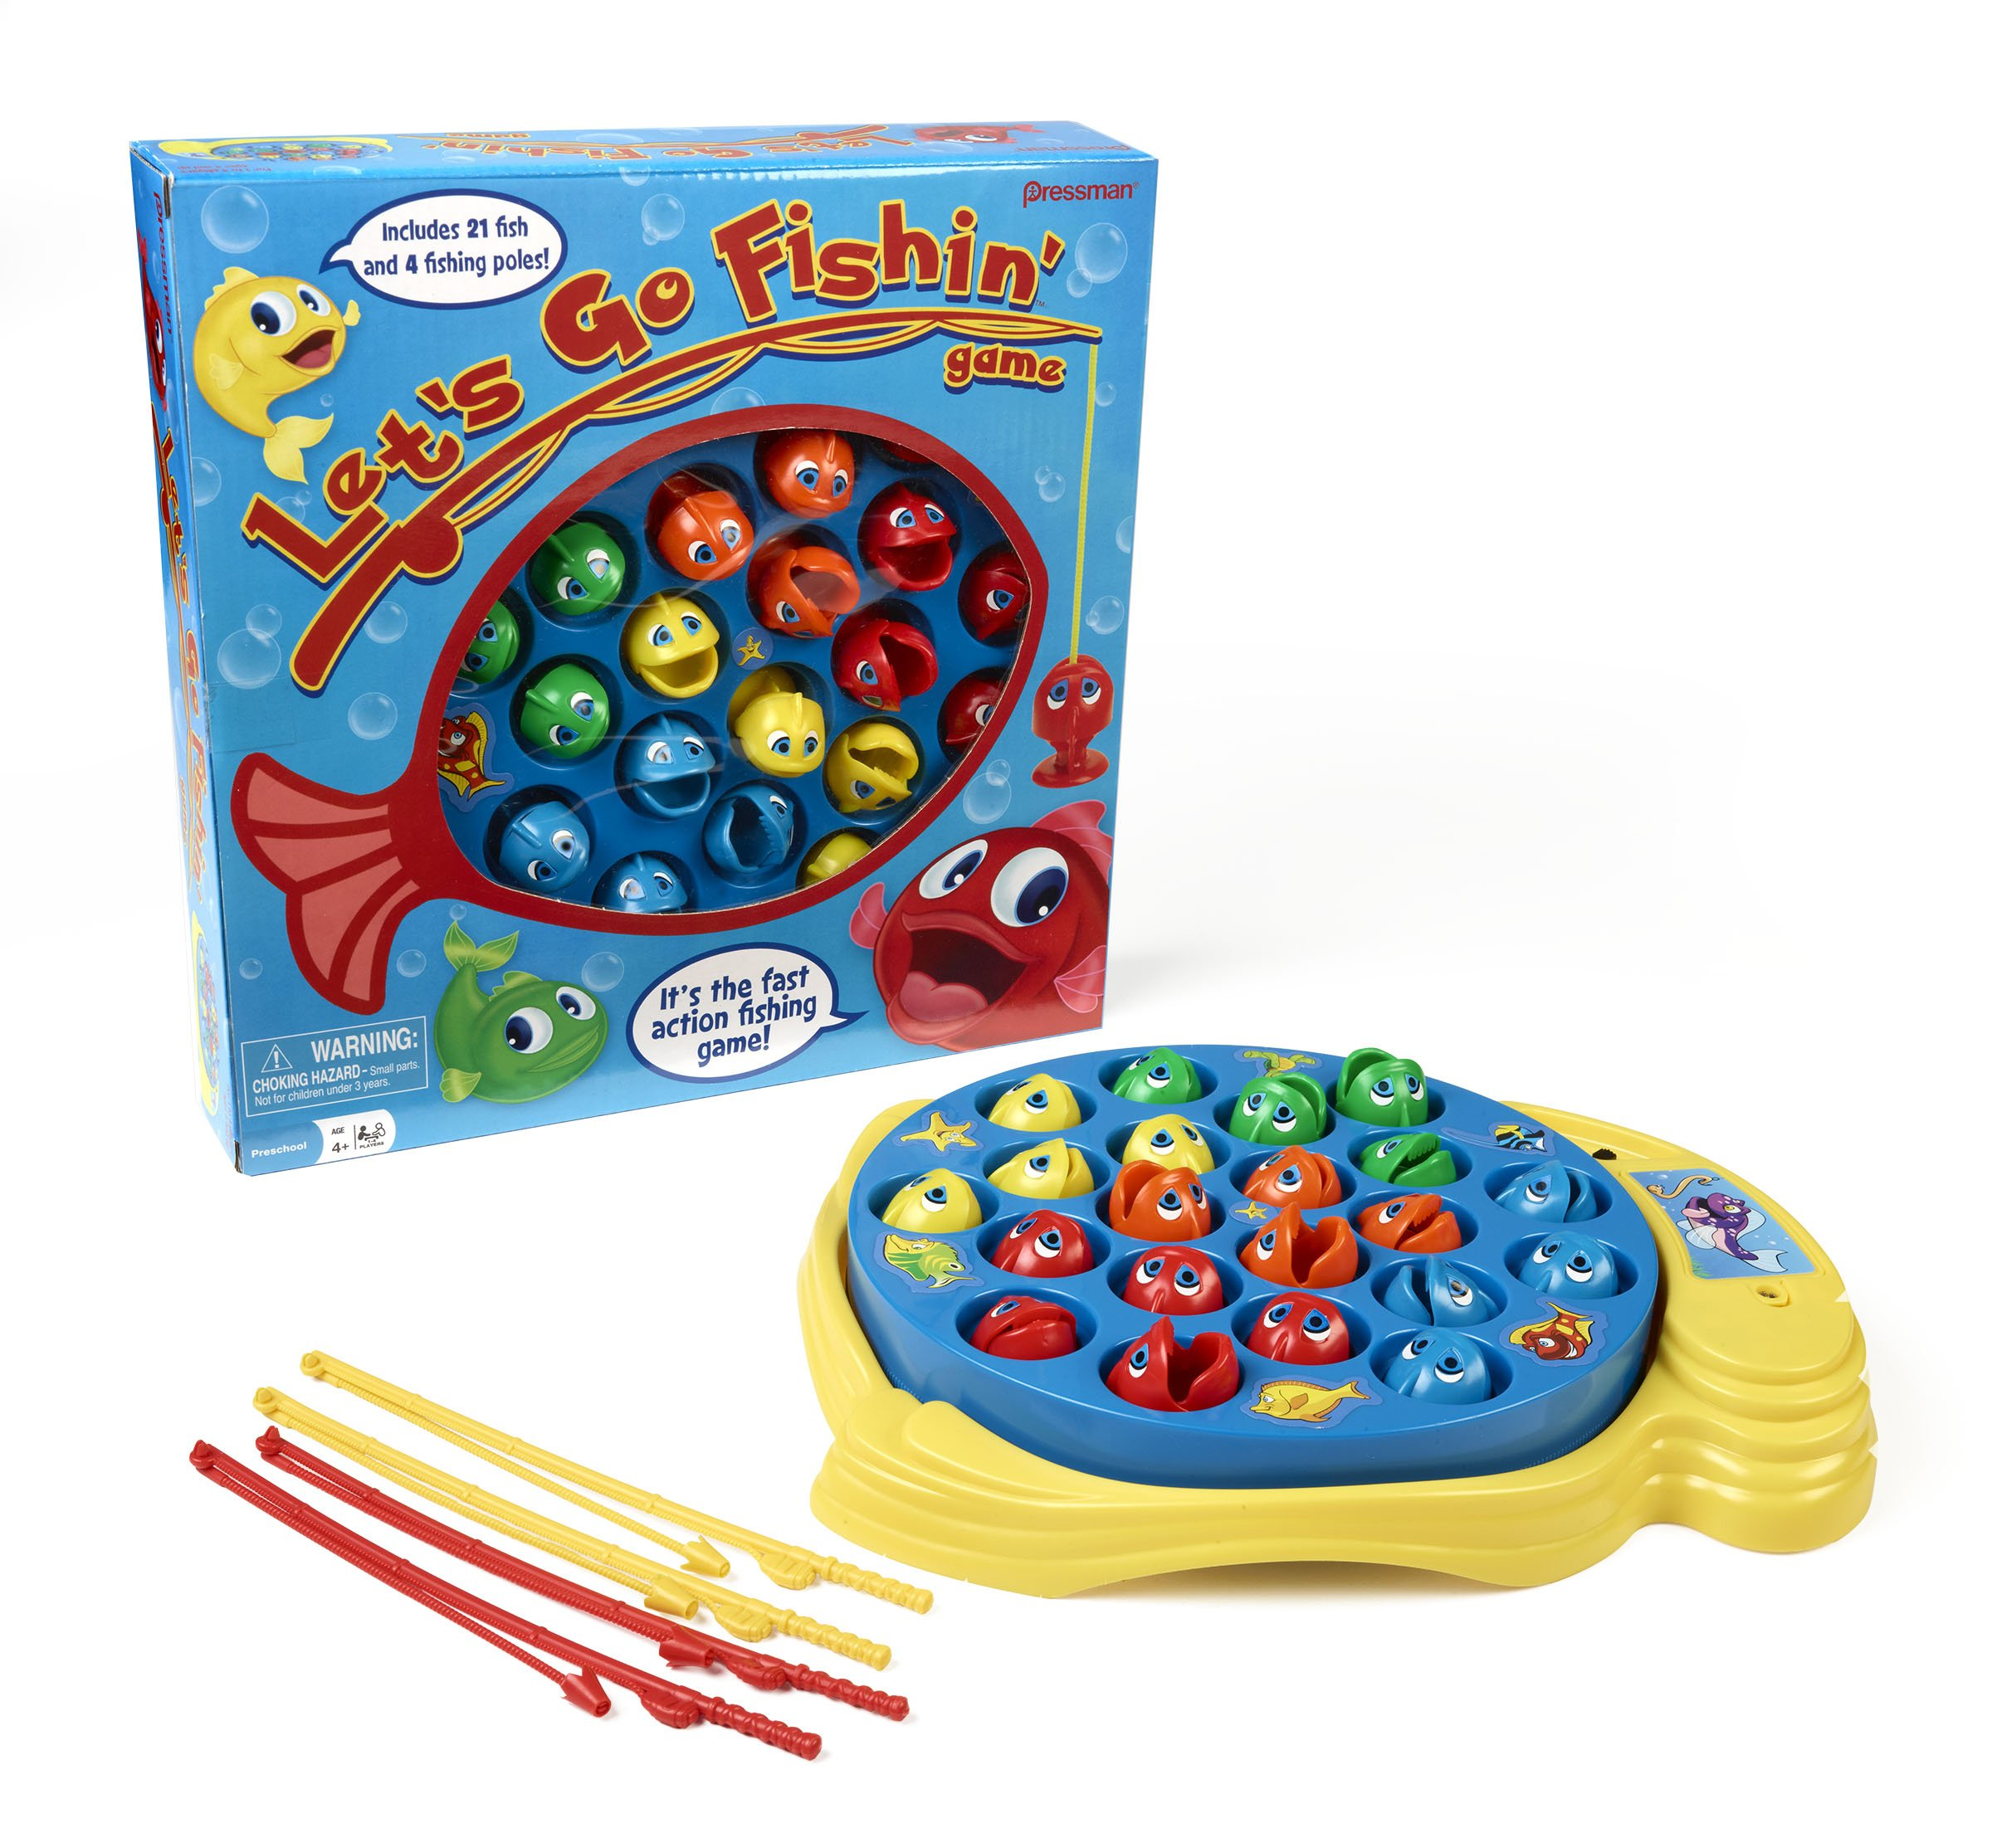 Lets go fishin 39 original classic fishing toy for kids for The fish game